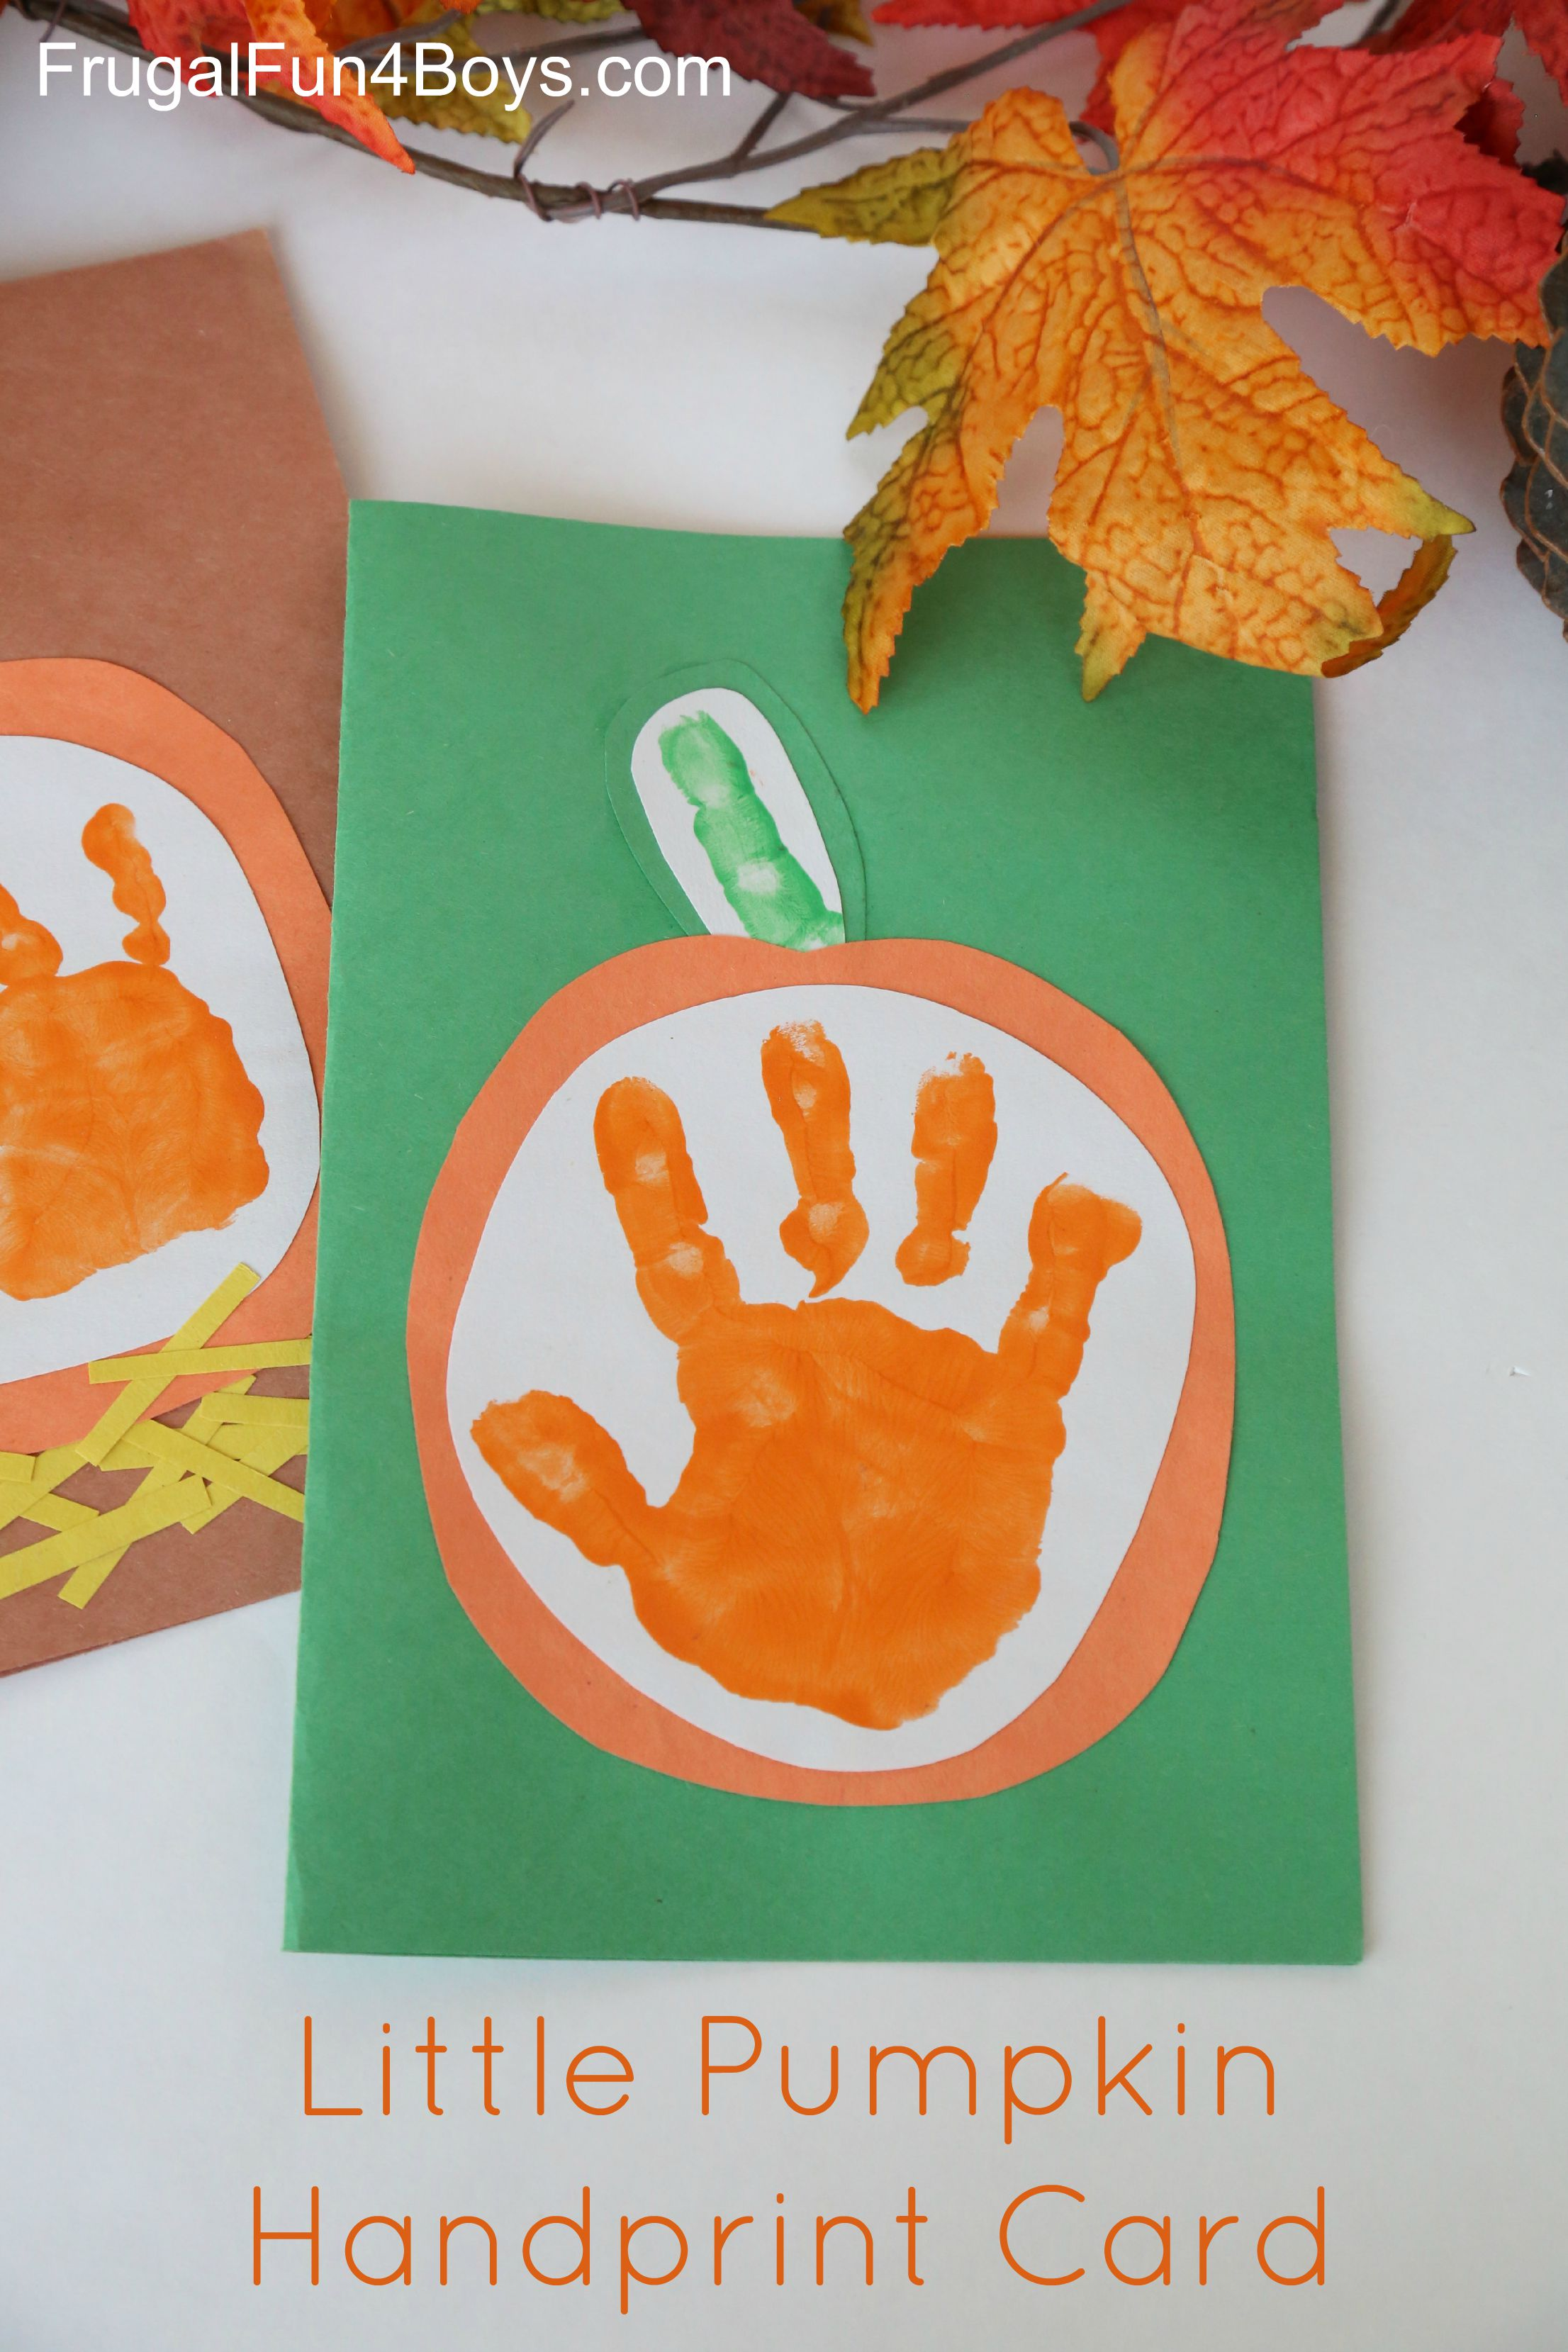 Your Little Pumpkin Handprint Card For Kids To Make